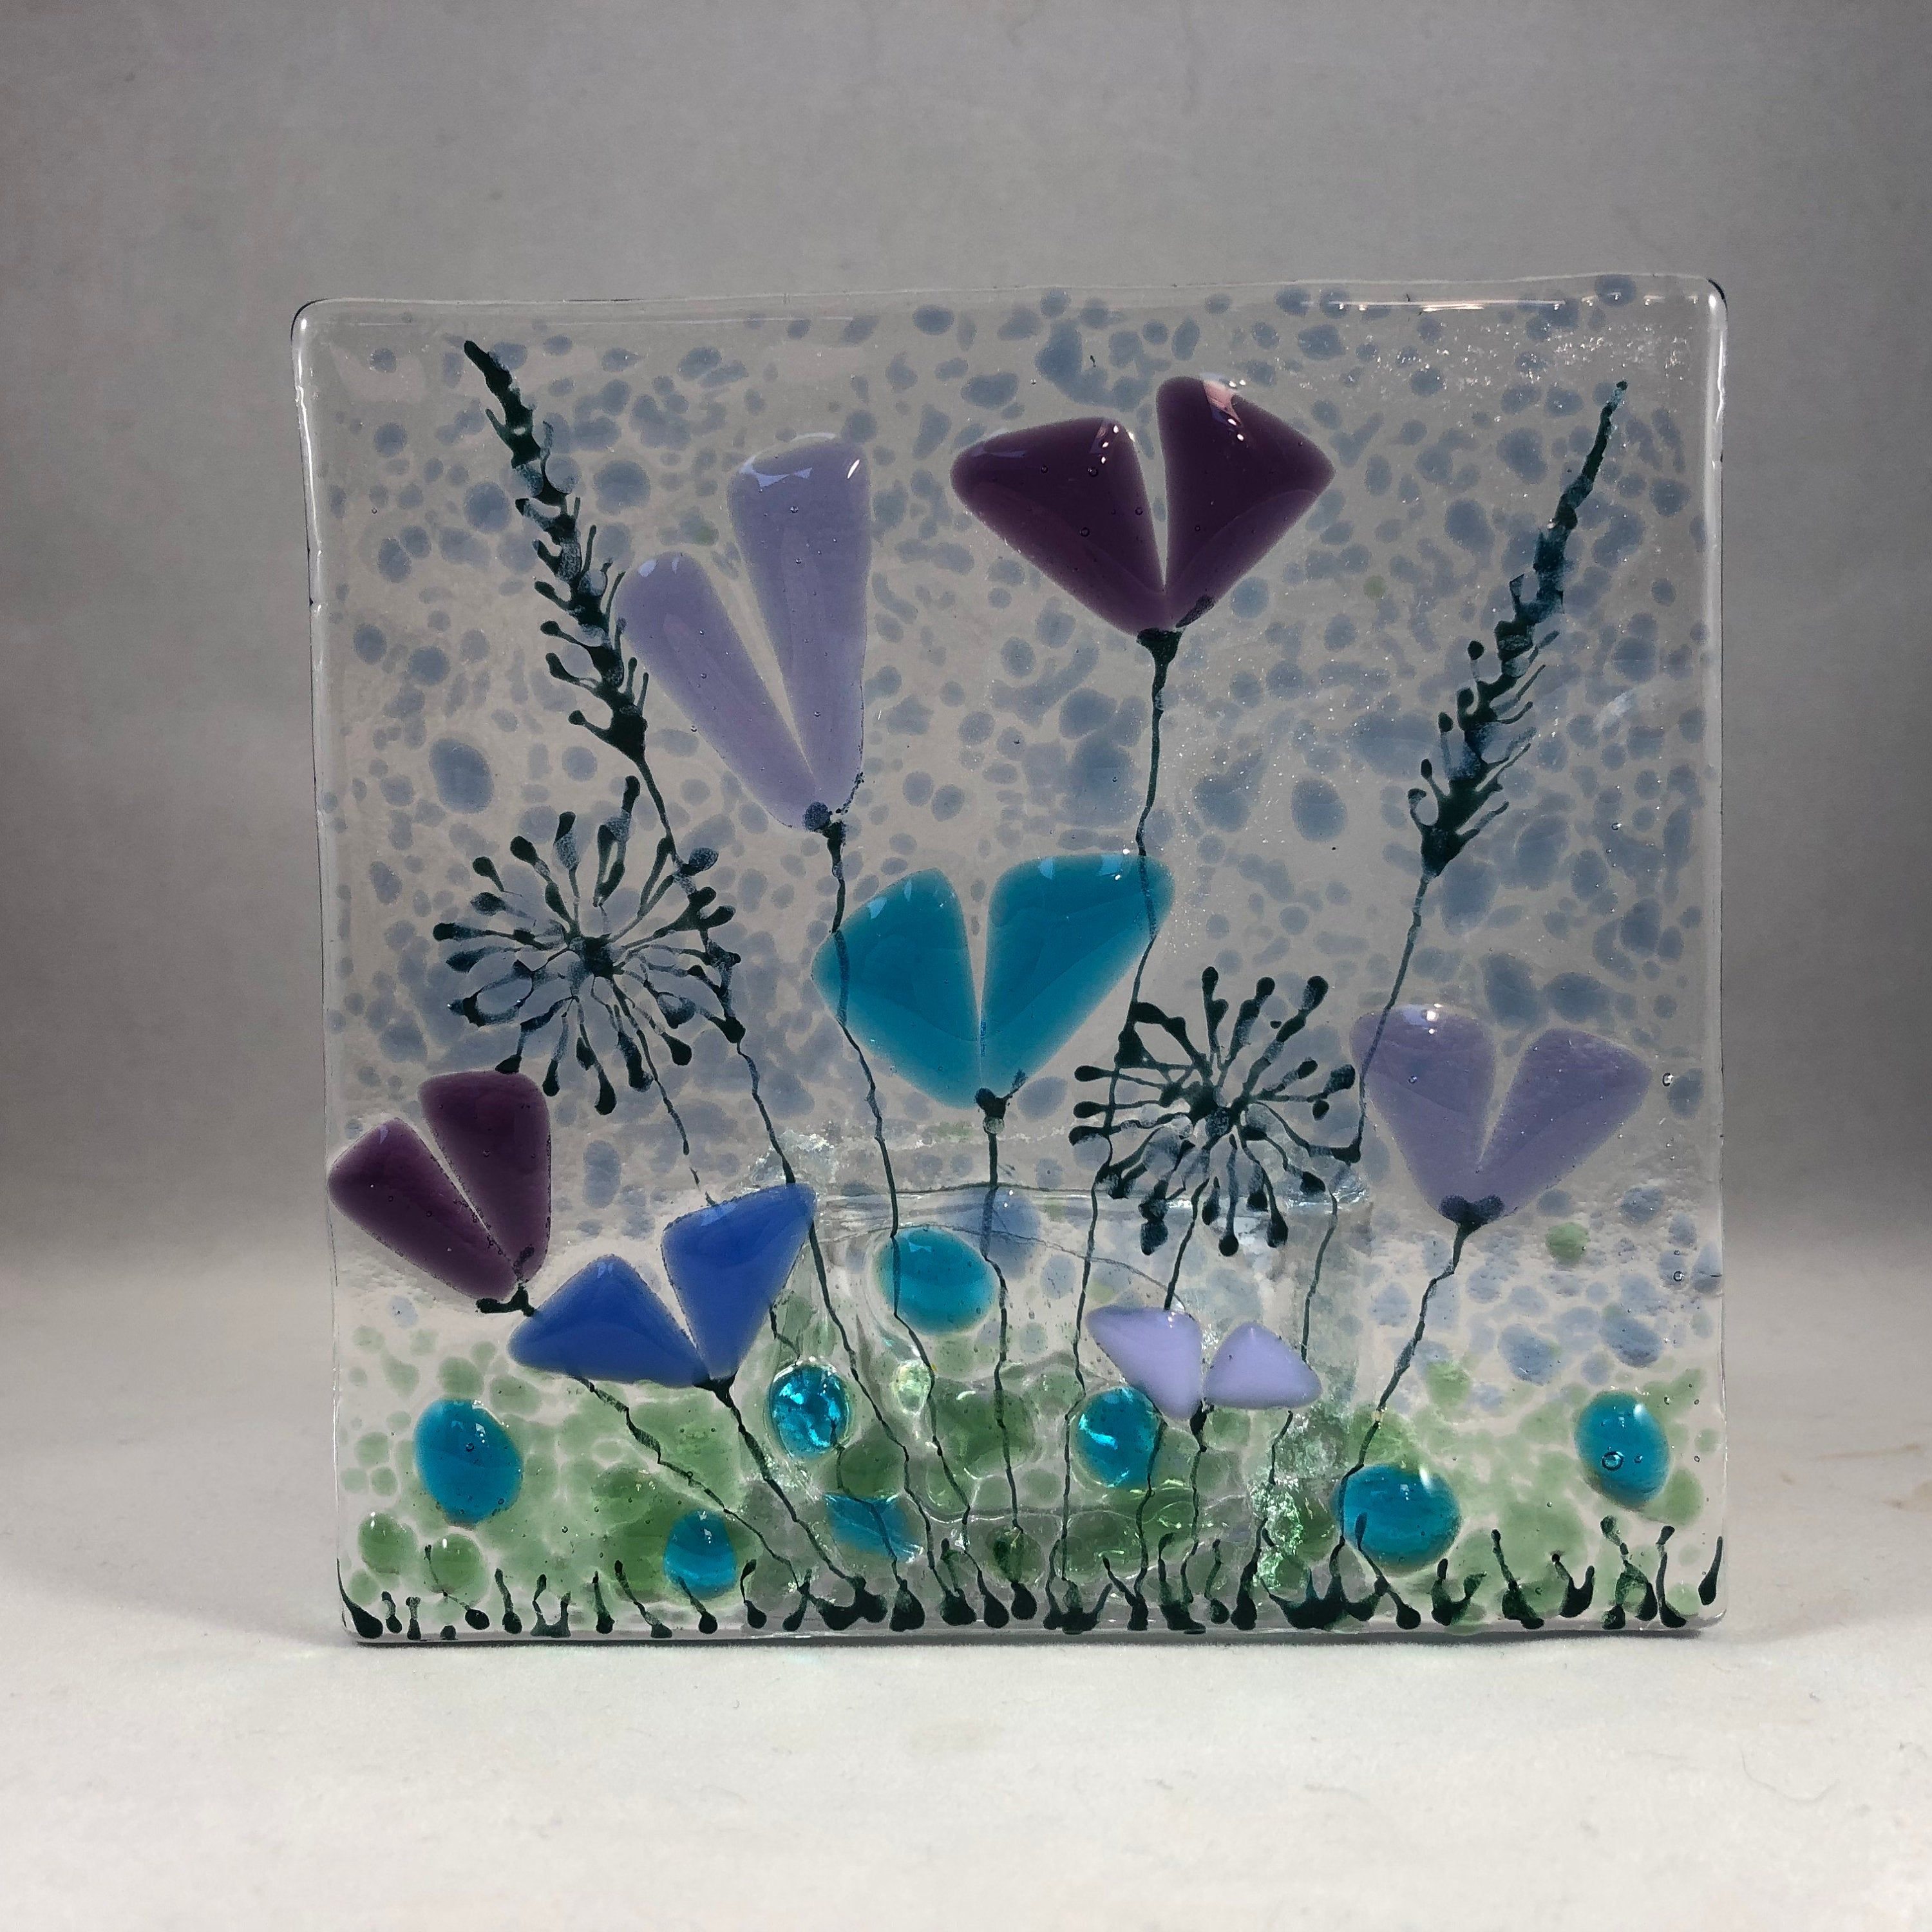 Floral Glass Plaque Candle Display Blue And Purple Flowers